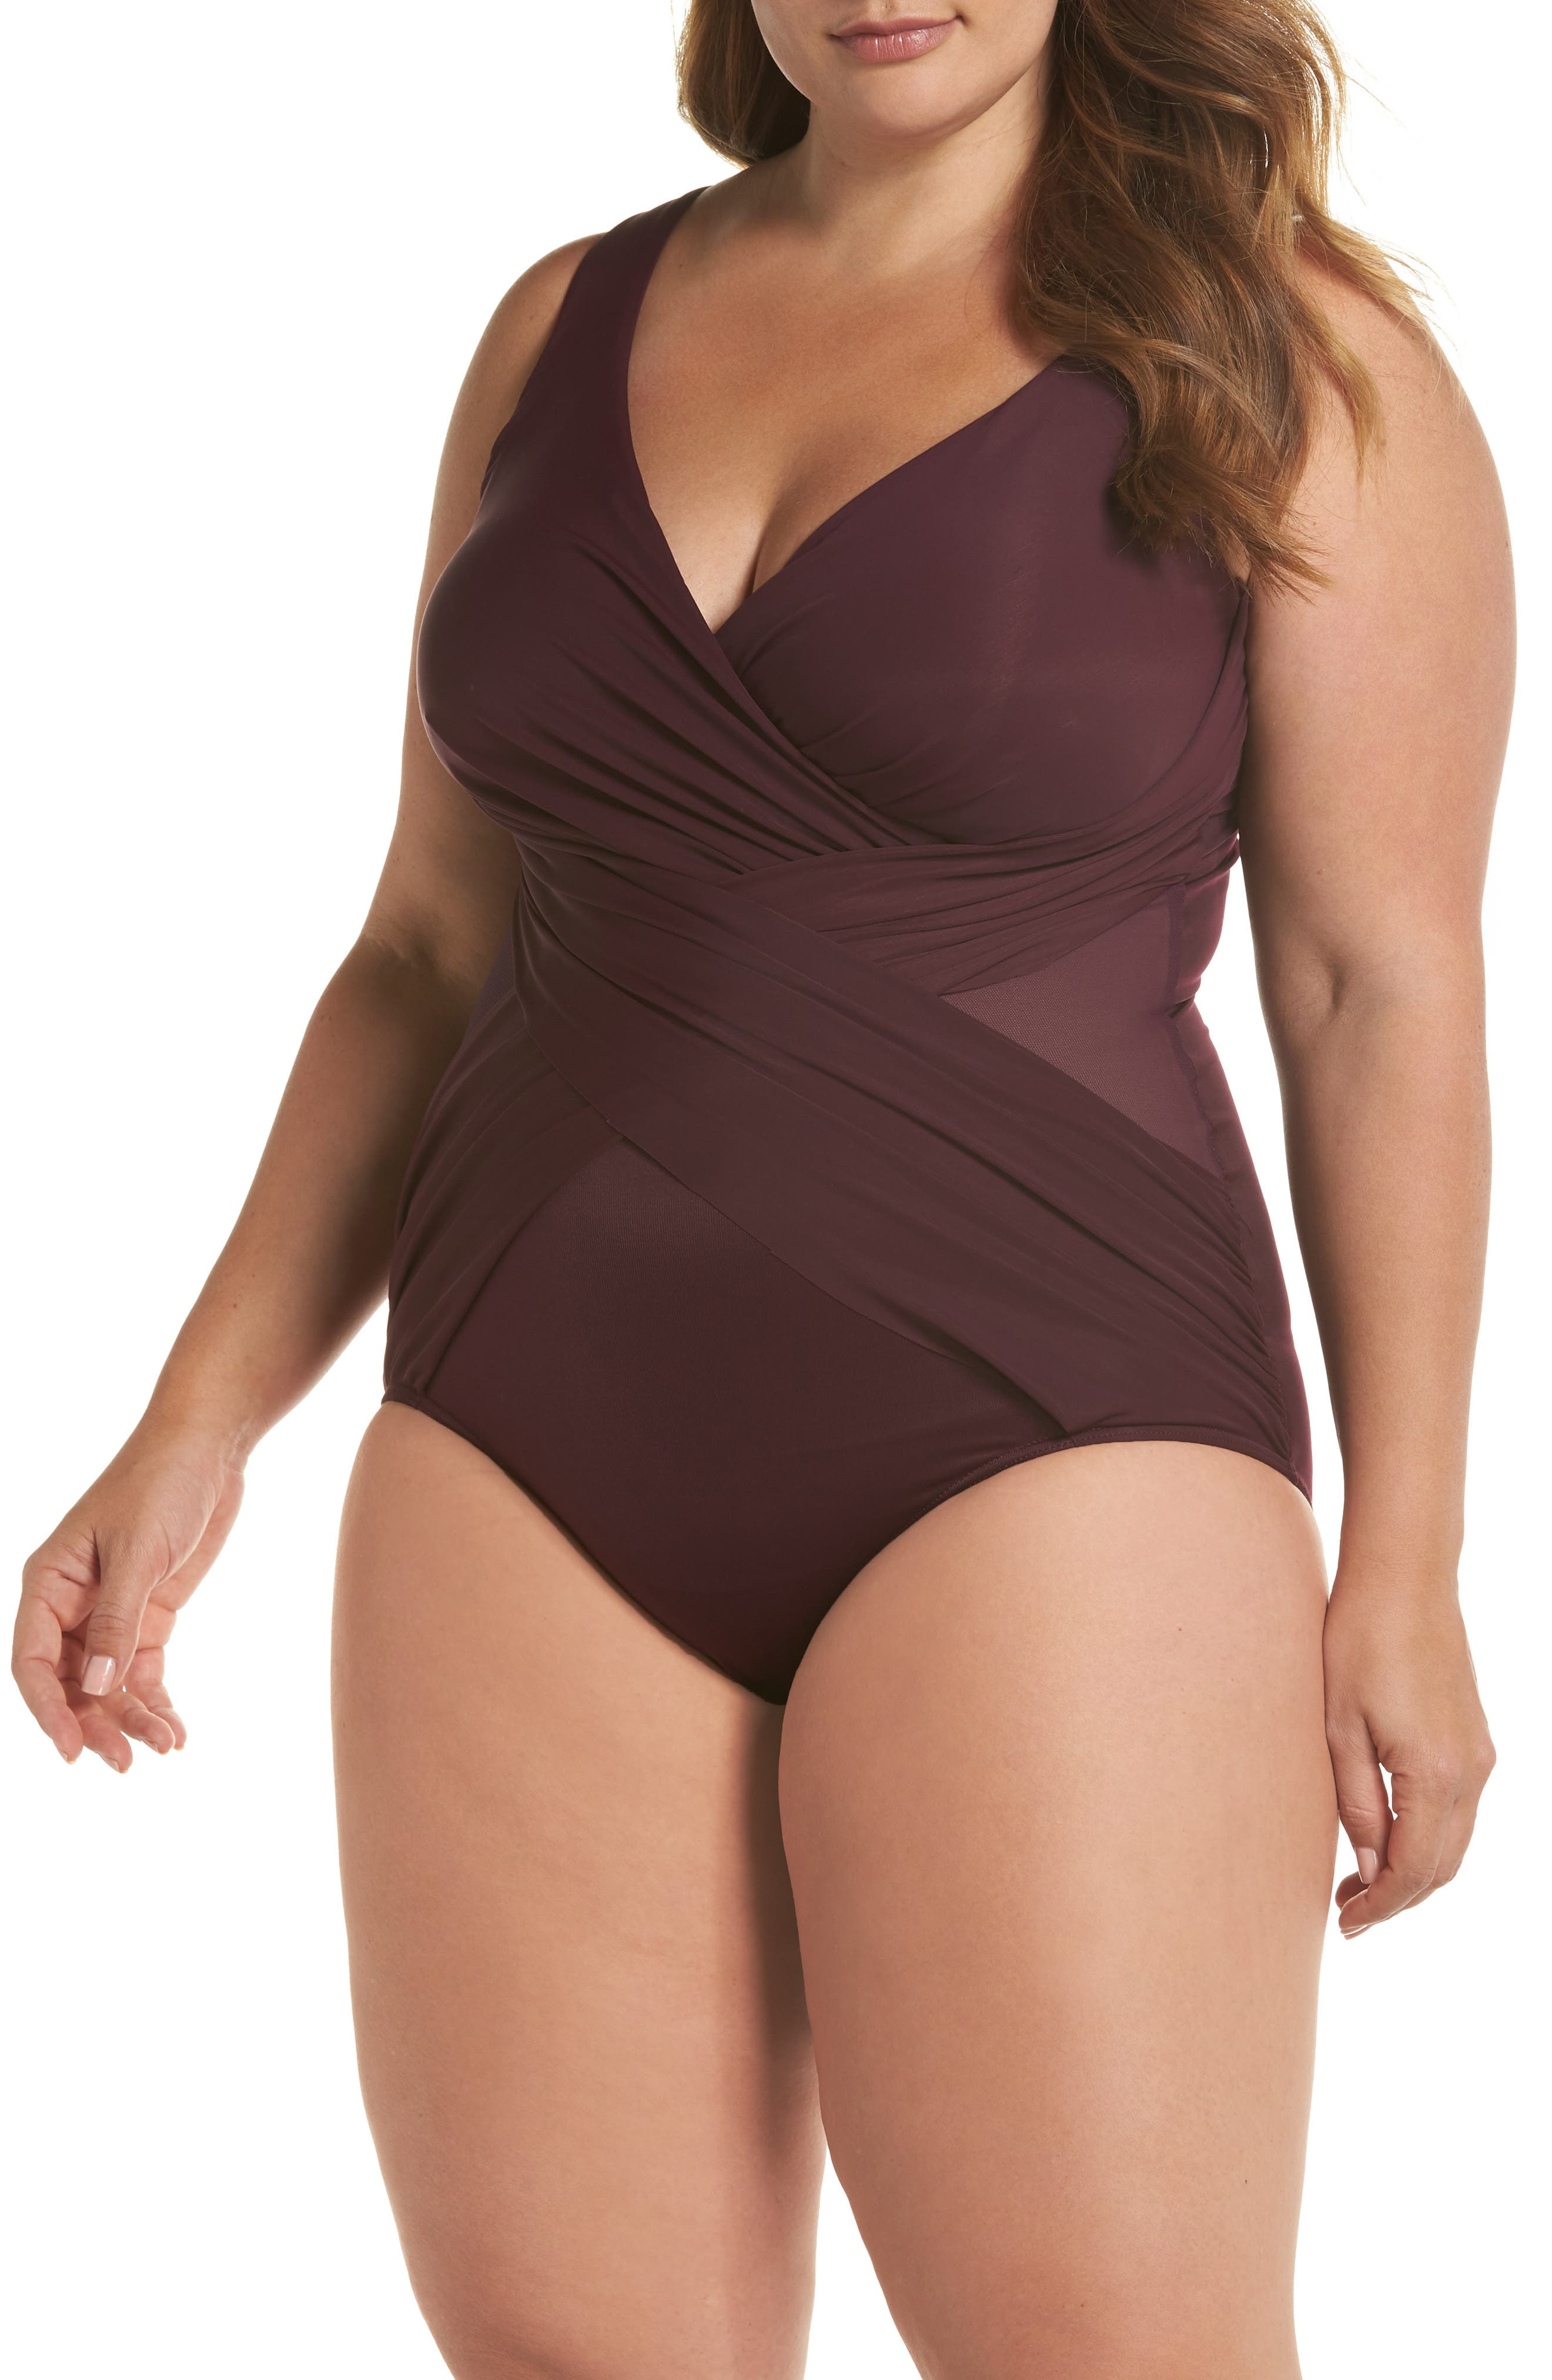 Illusionist Crossover One-Piece Swimsuit,                             Main thumbnail 1, color,                             SHIRAZ